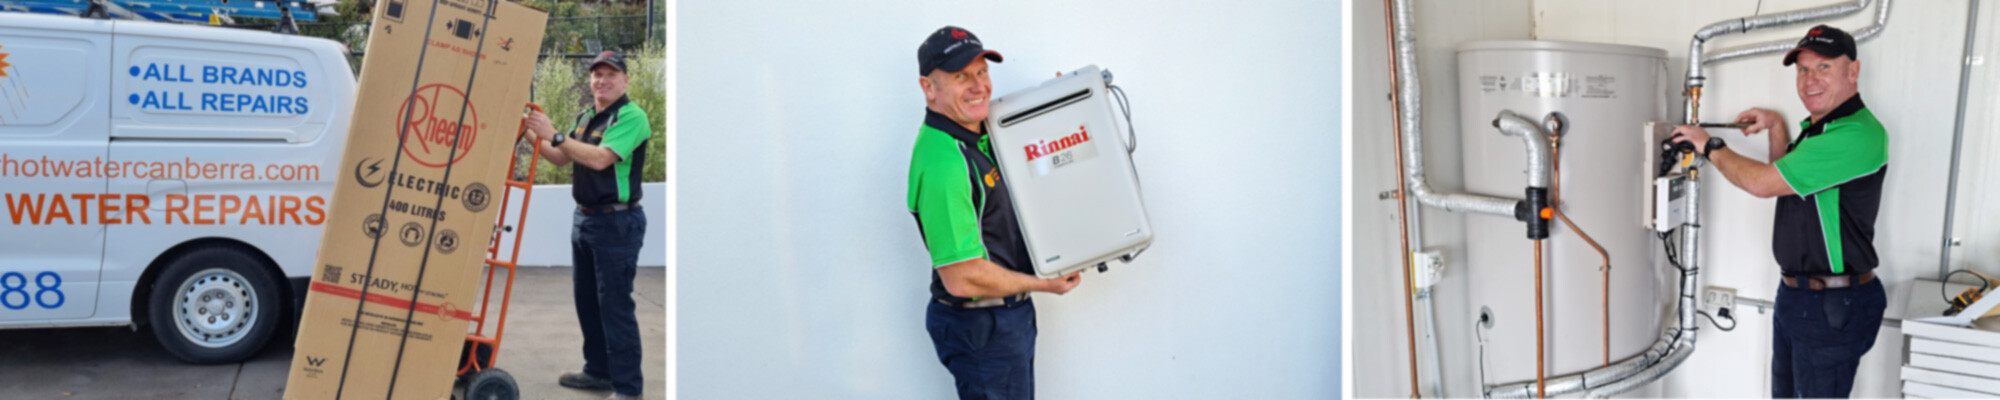 urgent How Water Repairs Services Canberra